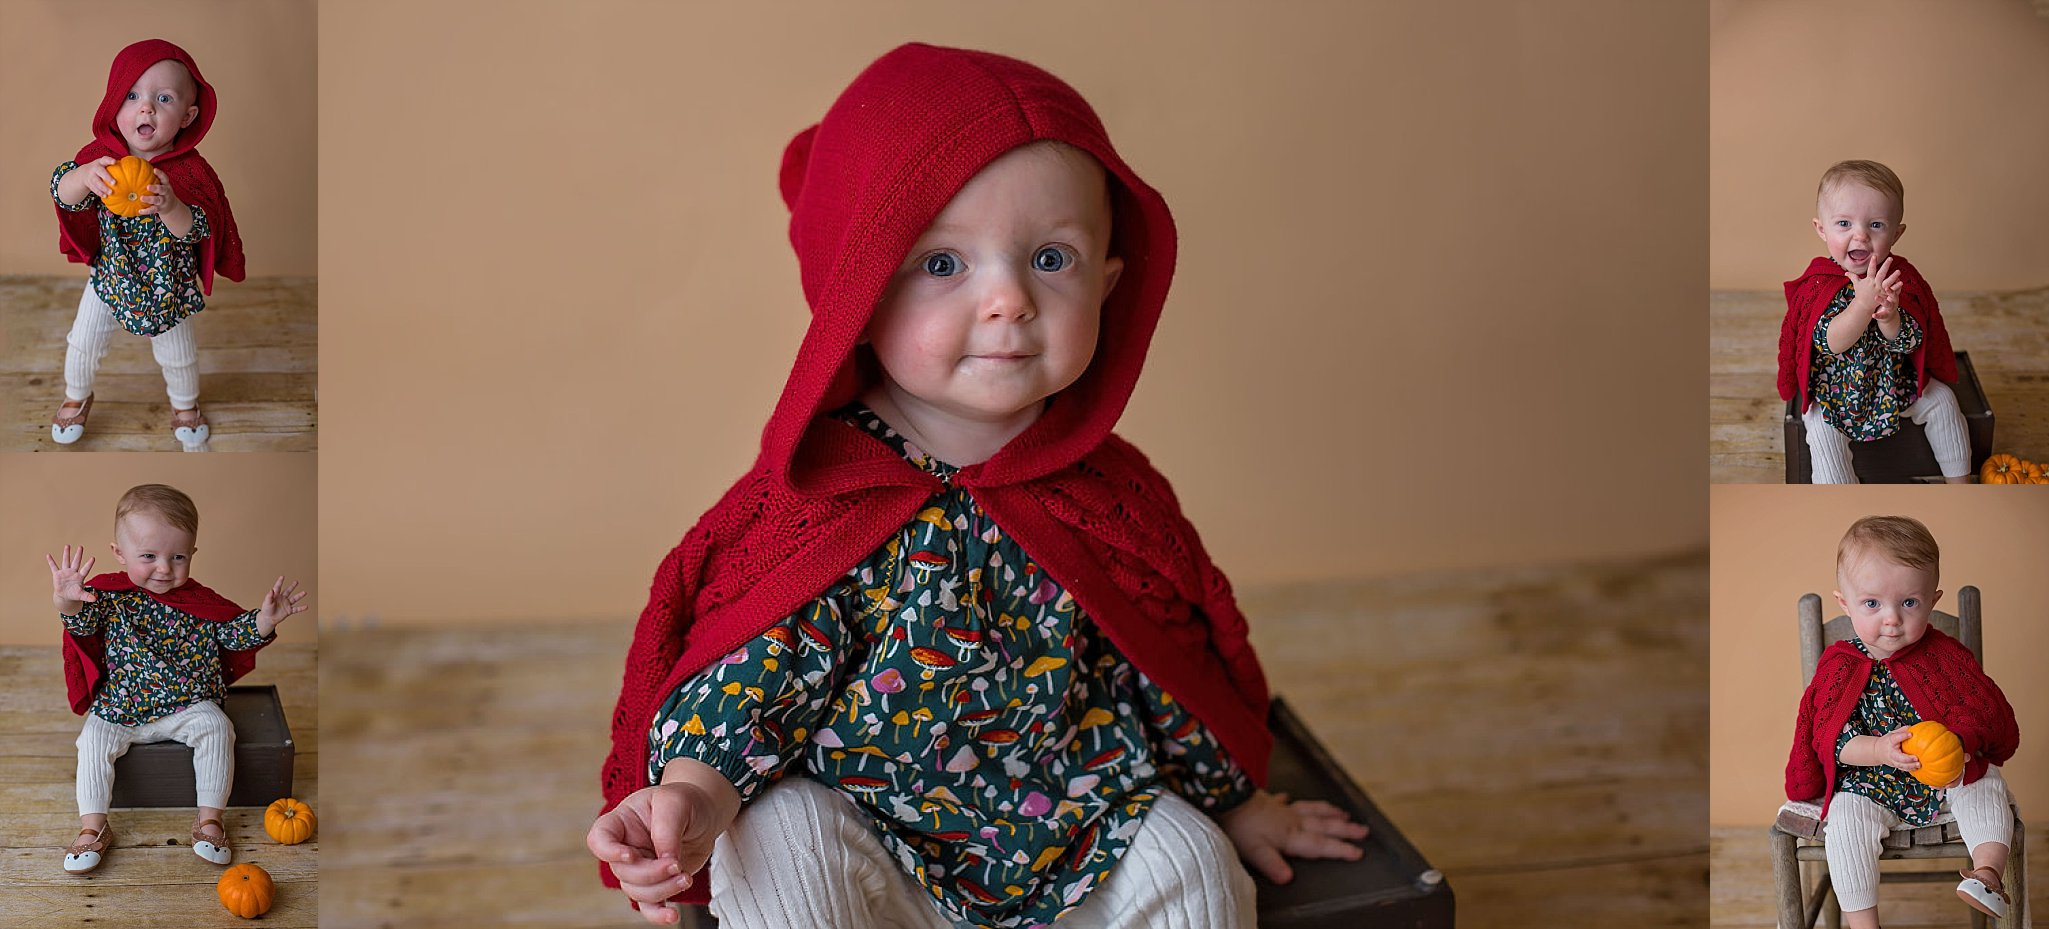 Pinehurst NC baby poses as Little Red Riding hood for themed one year studio session.